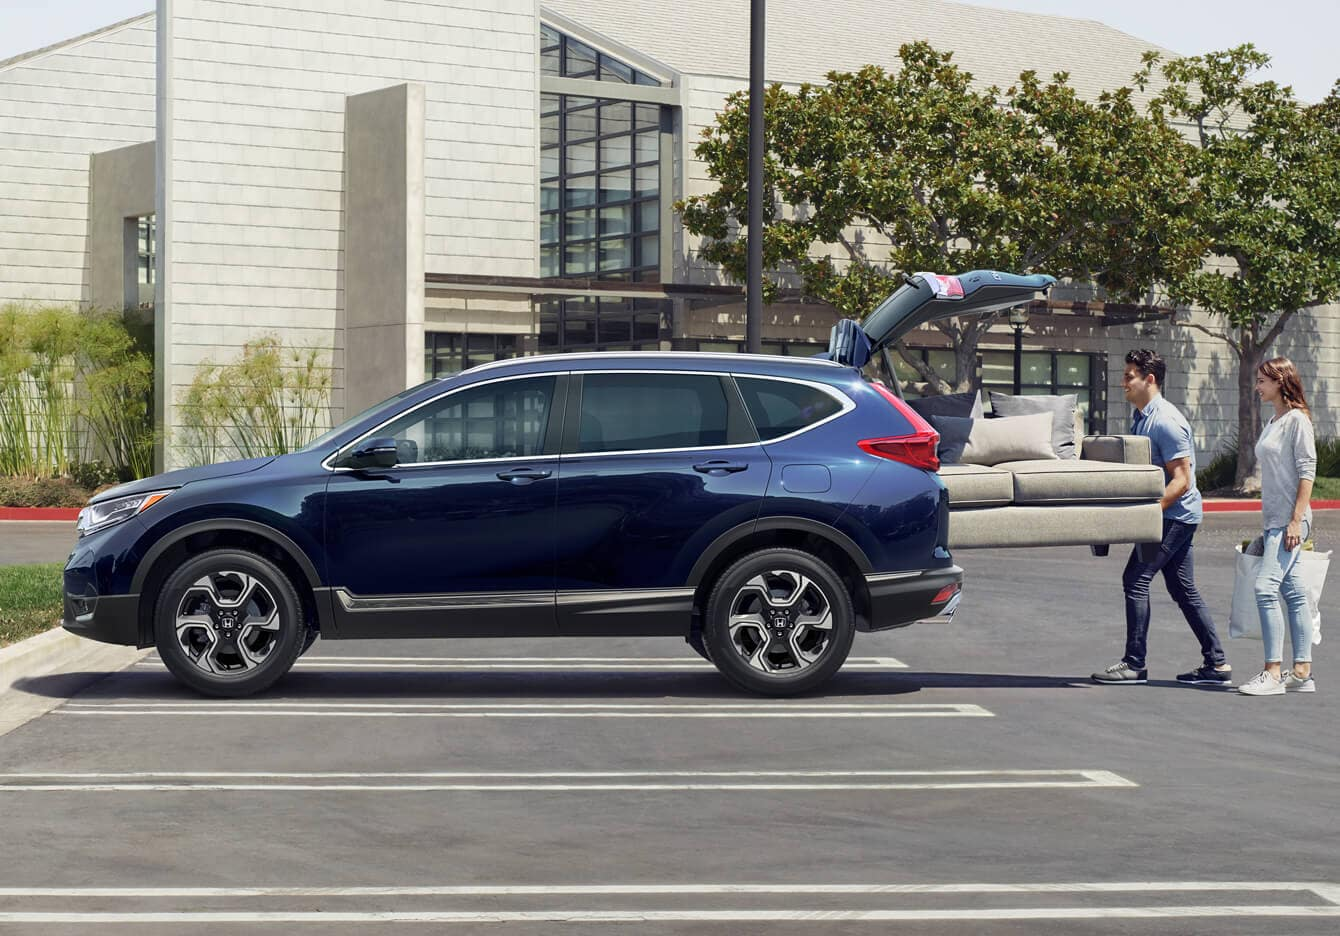 2019 Honda CR-V AWD Exterior Side Profile Open Hatch